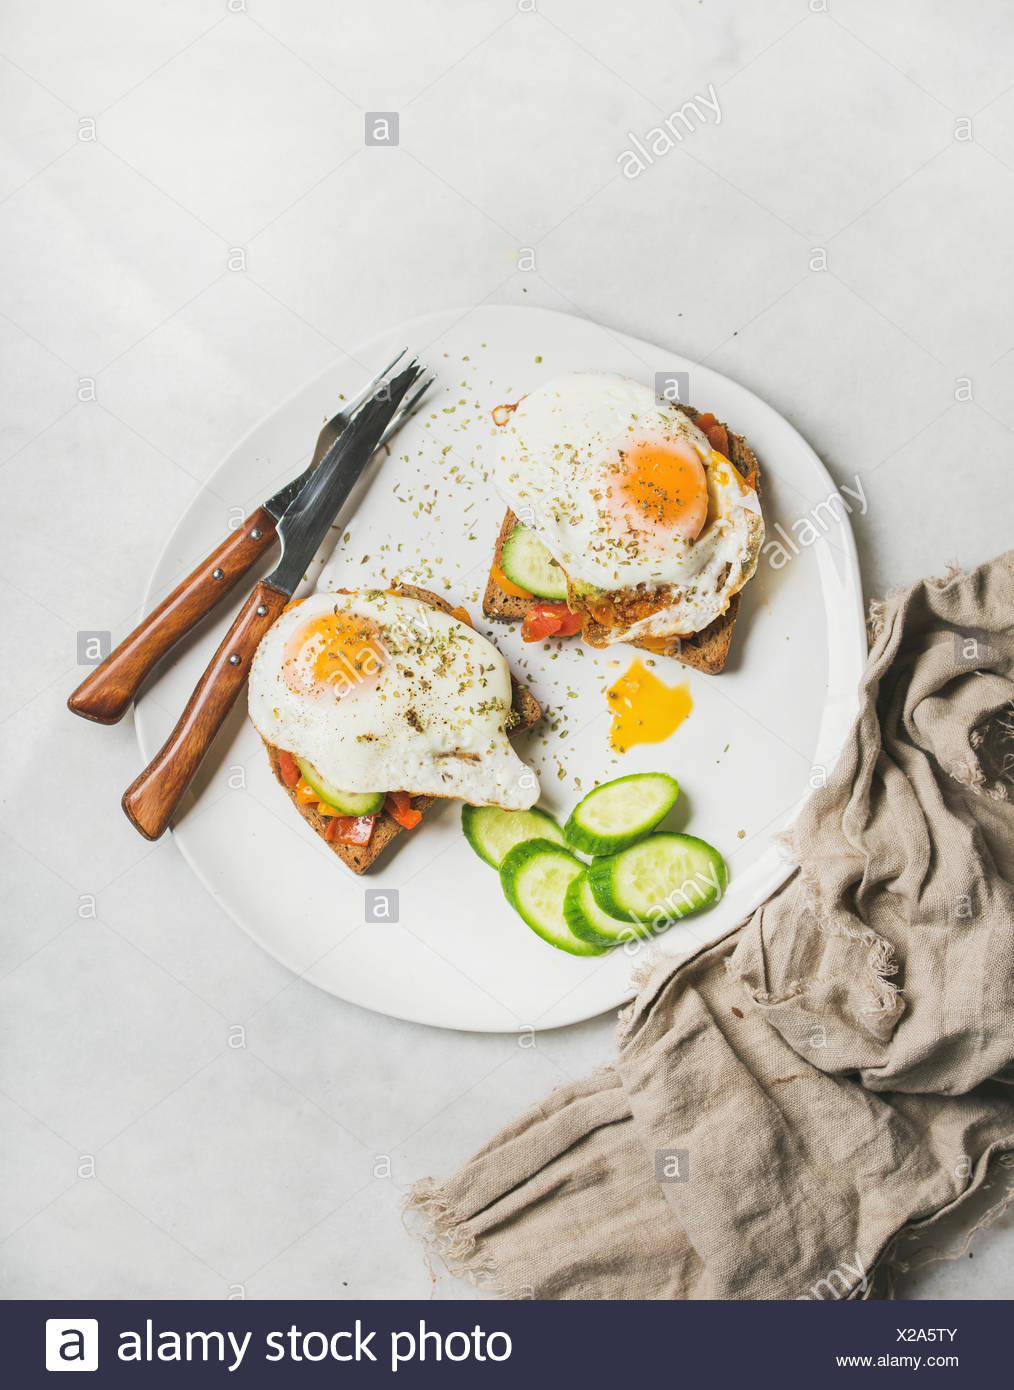 Breakfast toast with fried eggs with vegetables on white plate over grey marble background, top view. Healthy, clean eating, dieting food concept - Stock Image